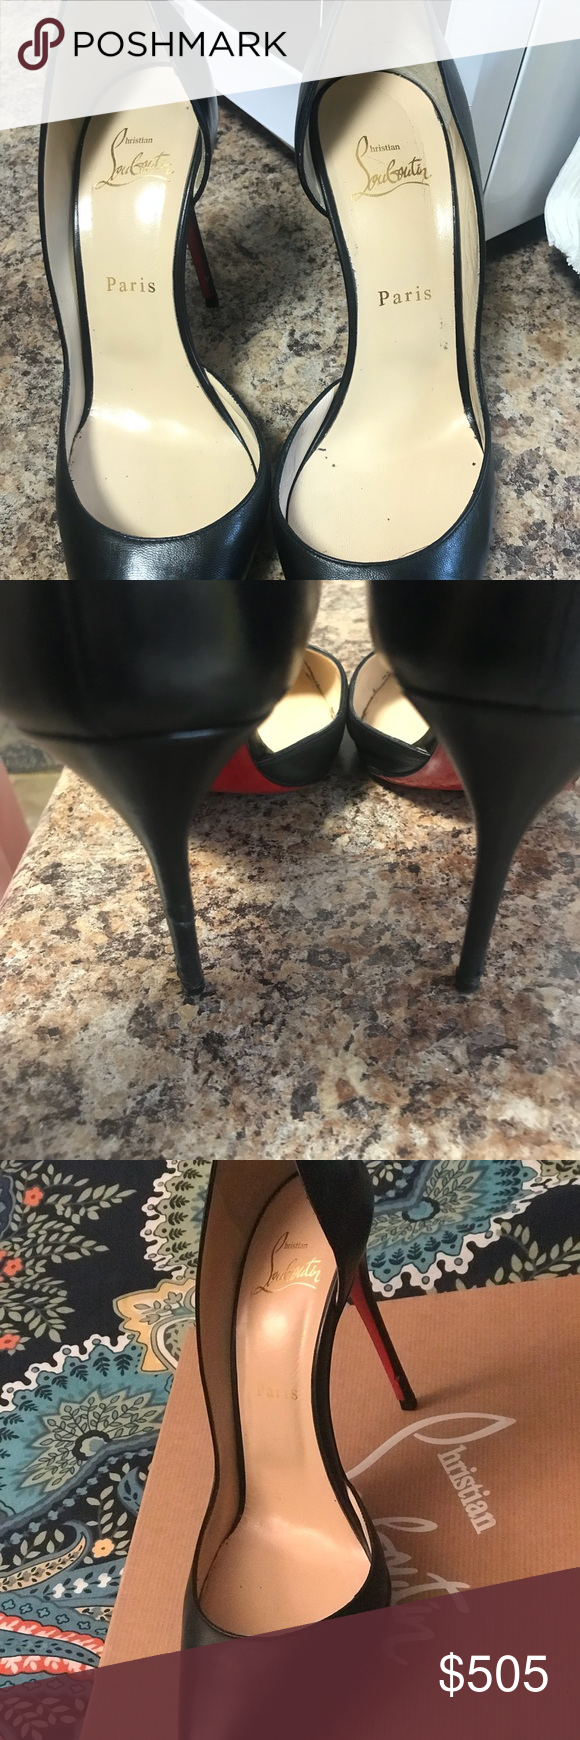 f9750c92f84 Authentic Christian louboutin Iriza 100 black Authentic Christian louboutin  Iriza 100 black (lightly used). red sole has protection done at the leather  spa) ...